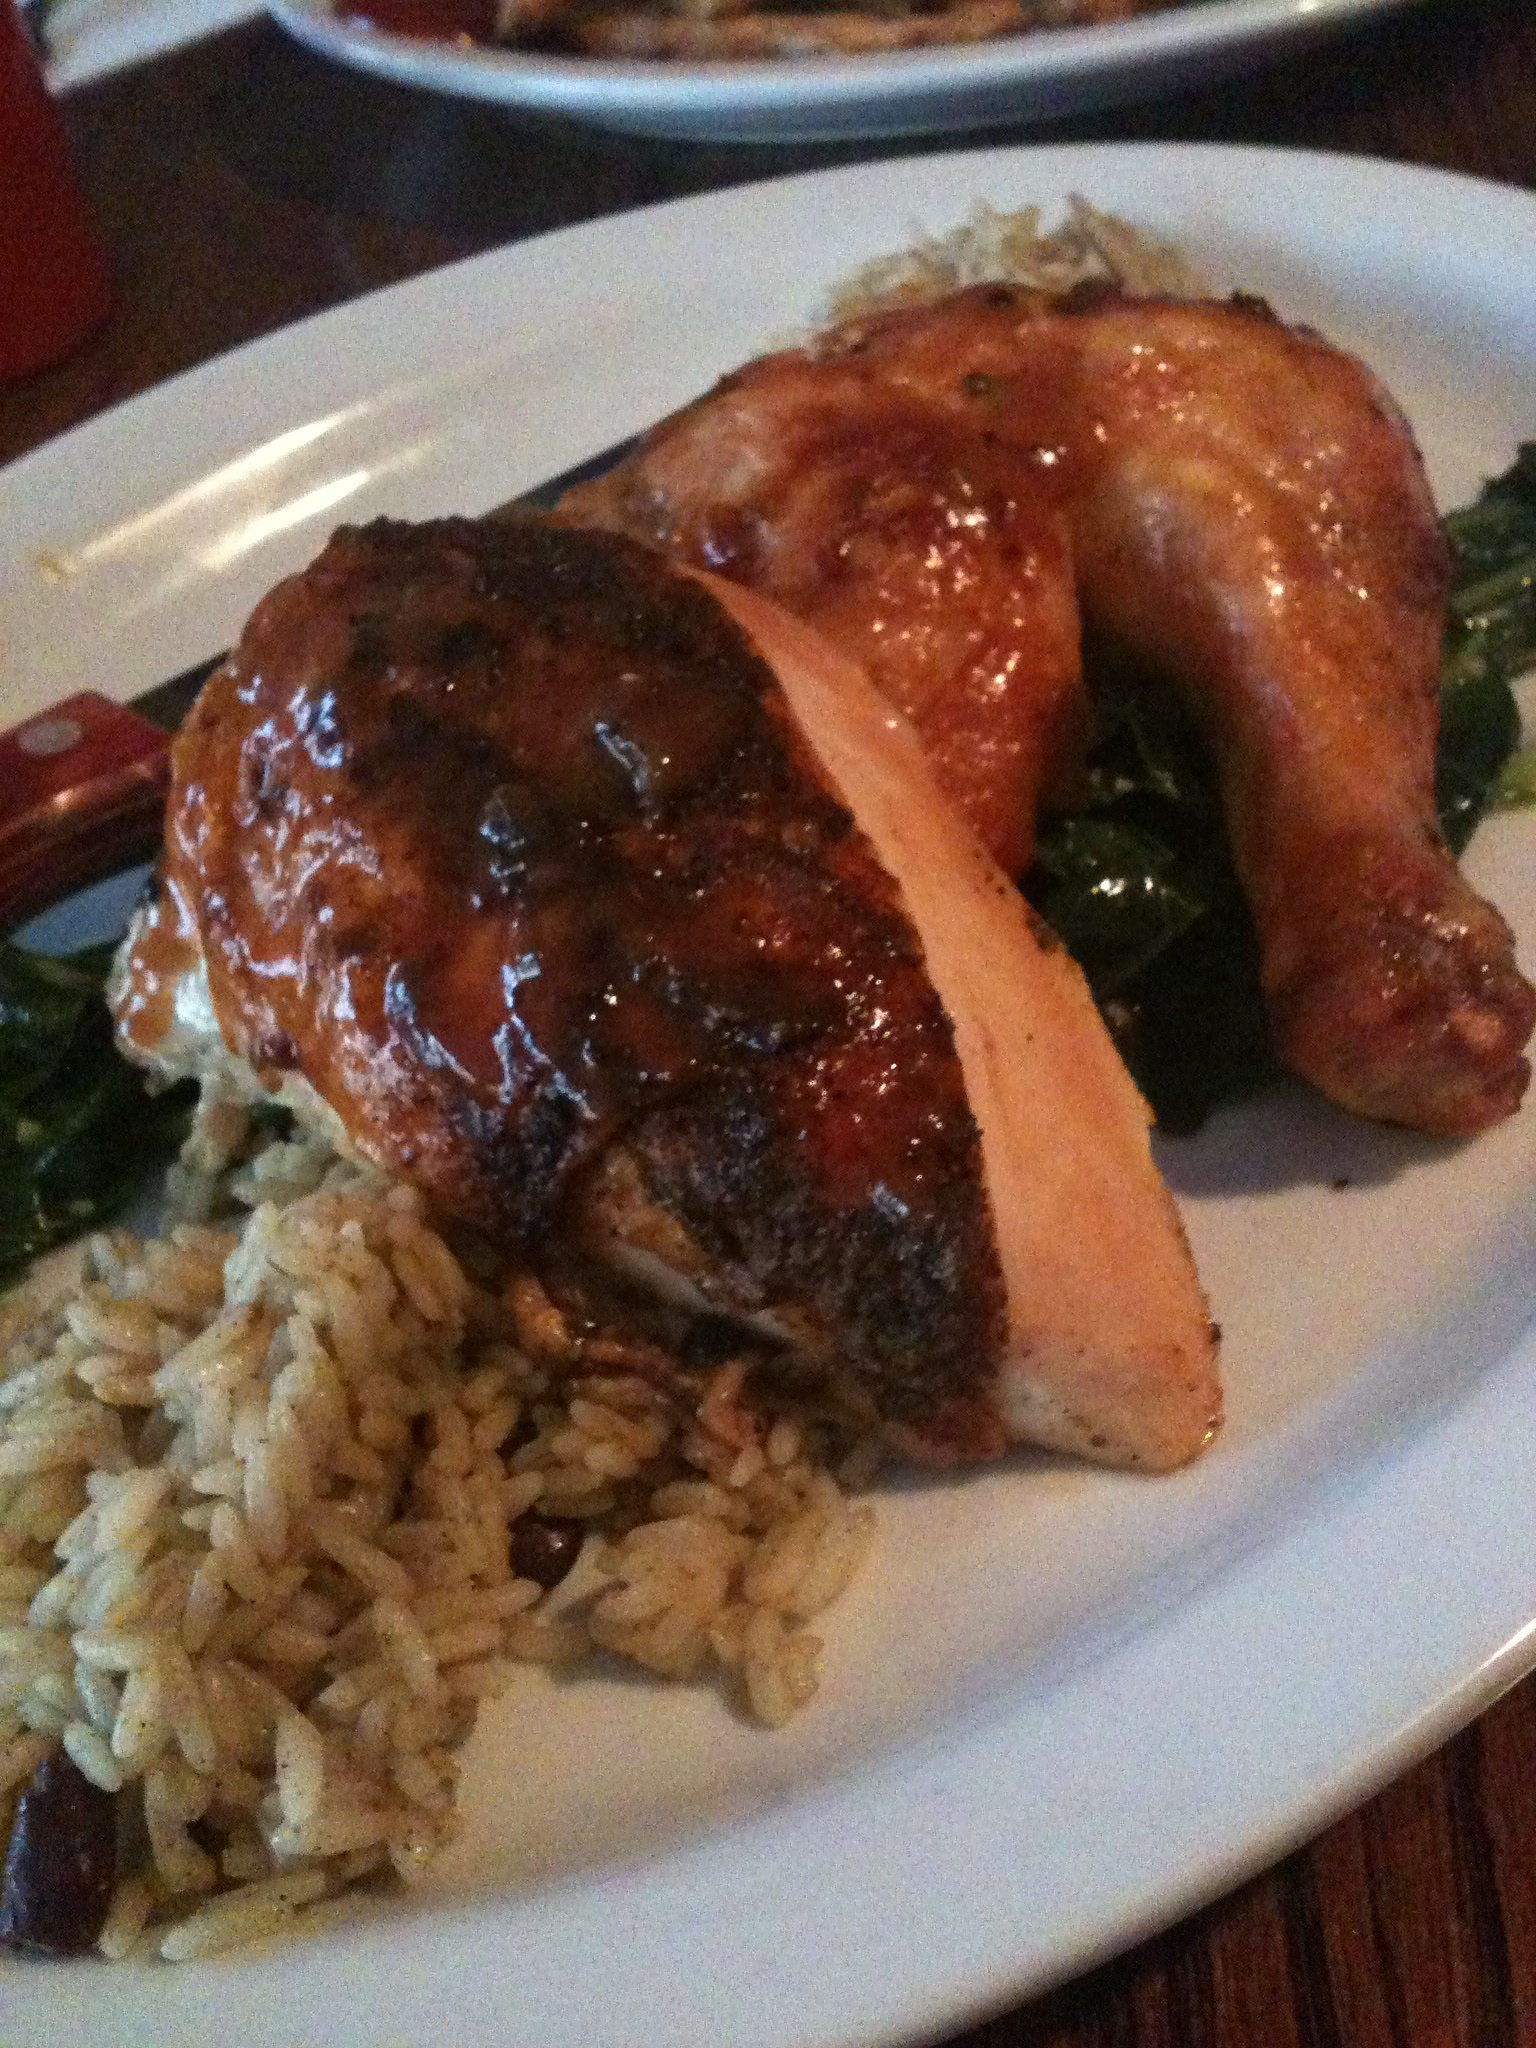 WEEKLY LUNCH PICK: The Giggling Jerks does jerk bird right